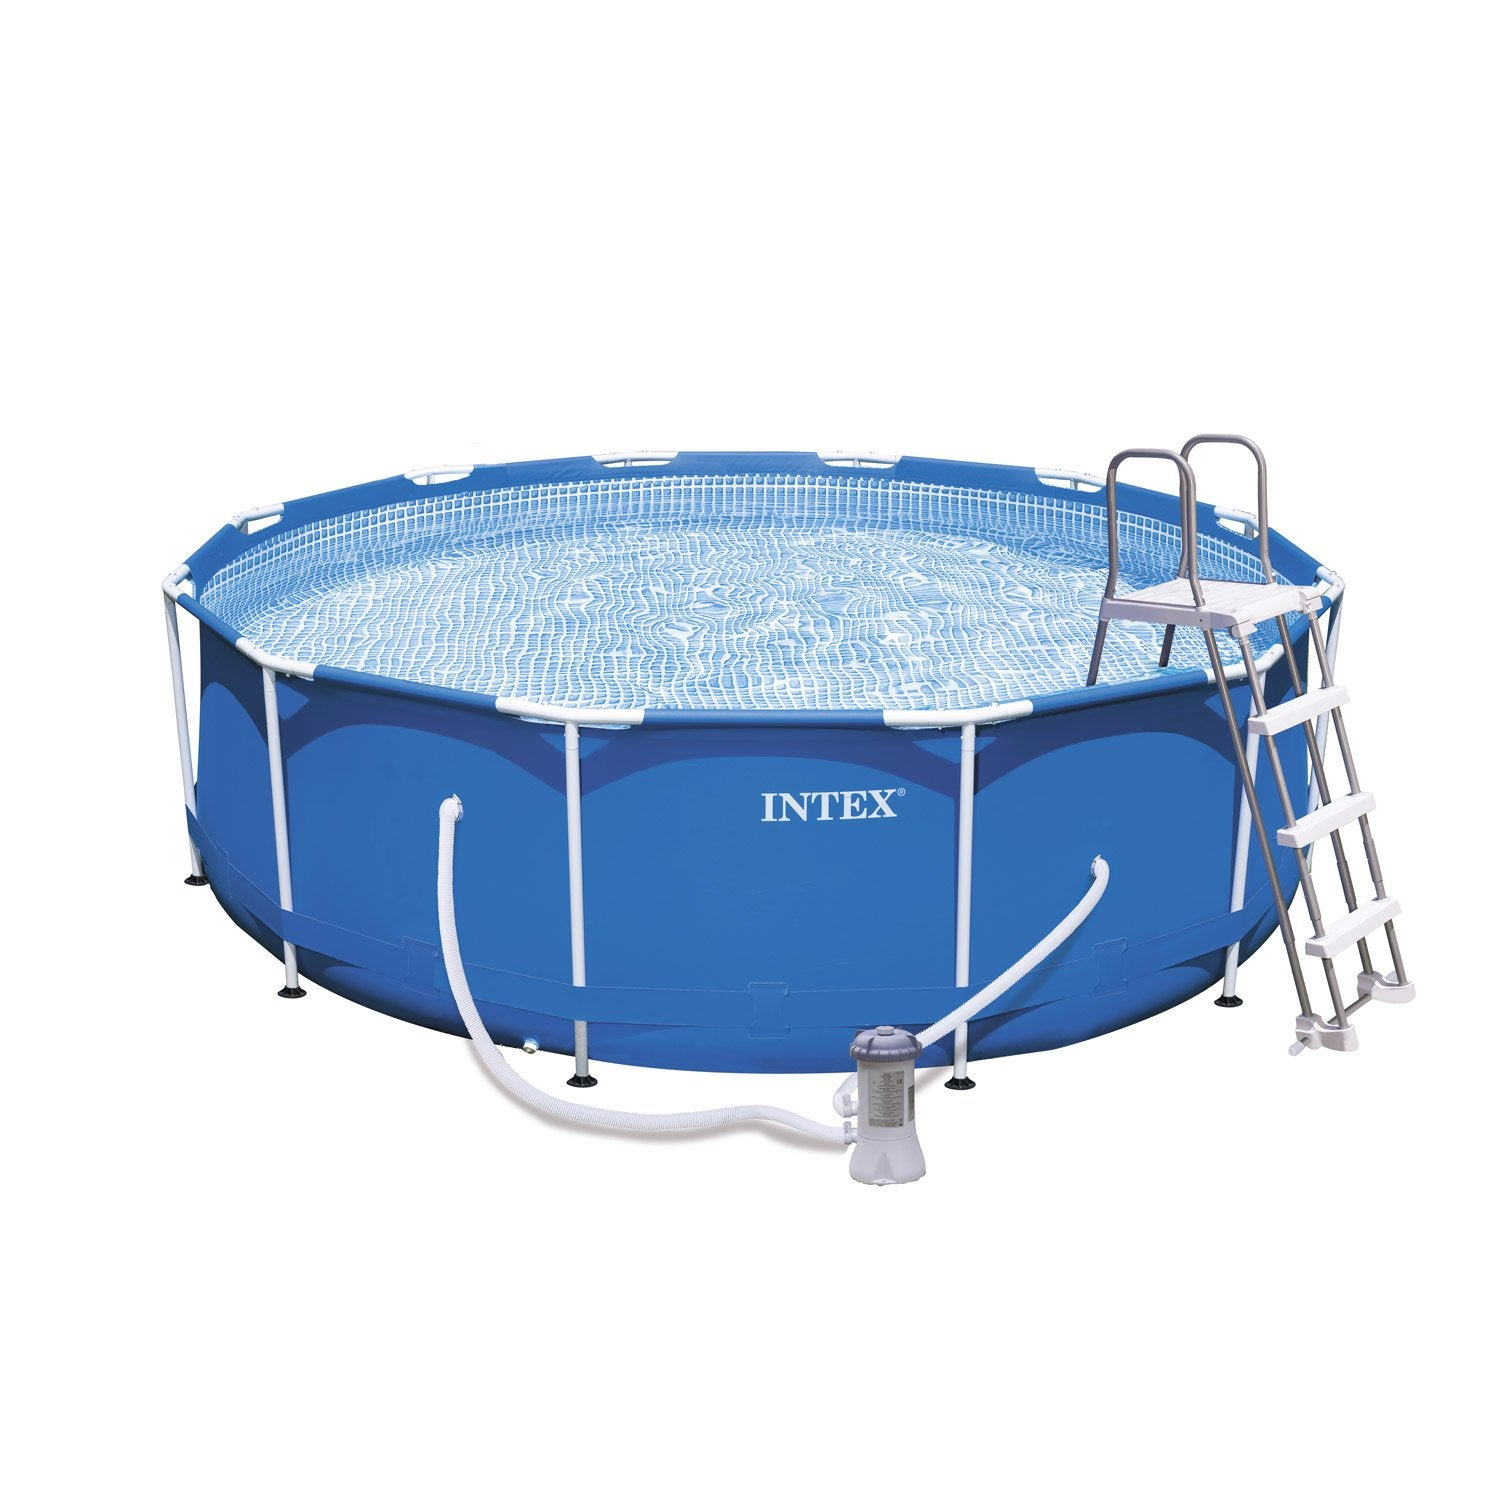 Piscine hors sol autoportante tubulaire suppression intex for Piscine tubulaire hauteur 1 m